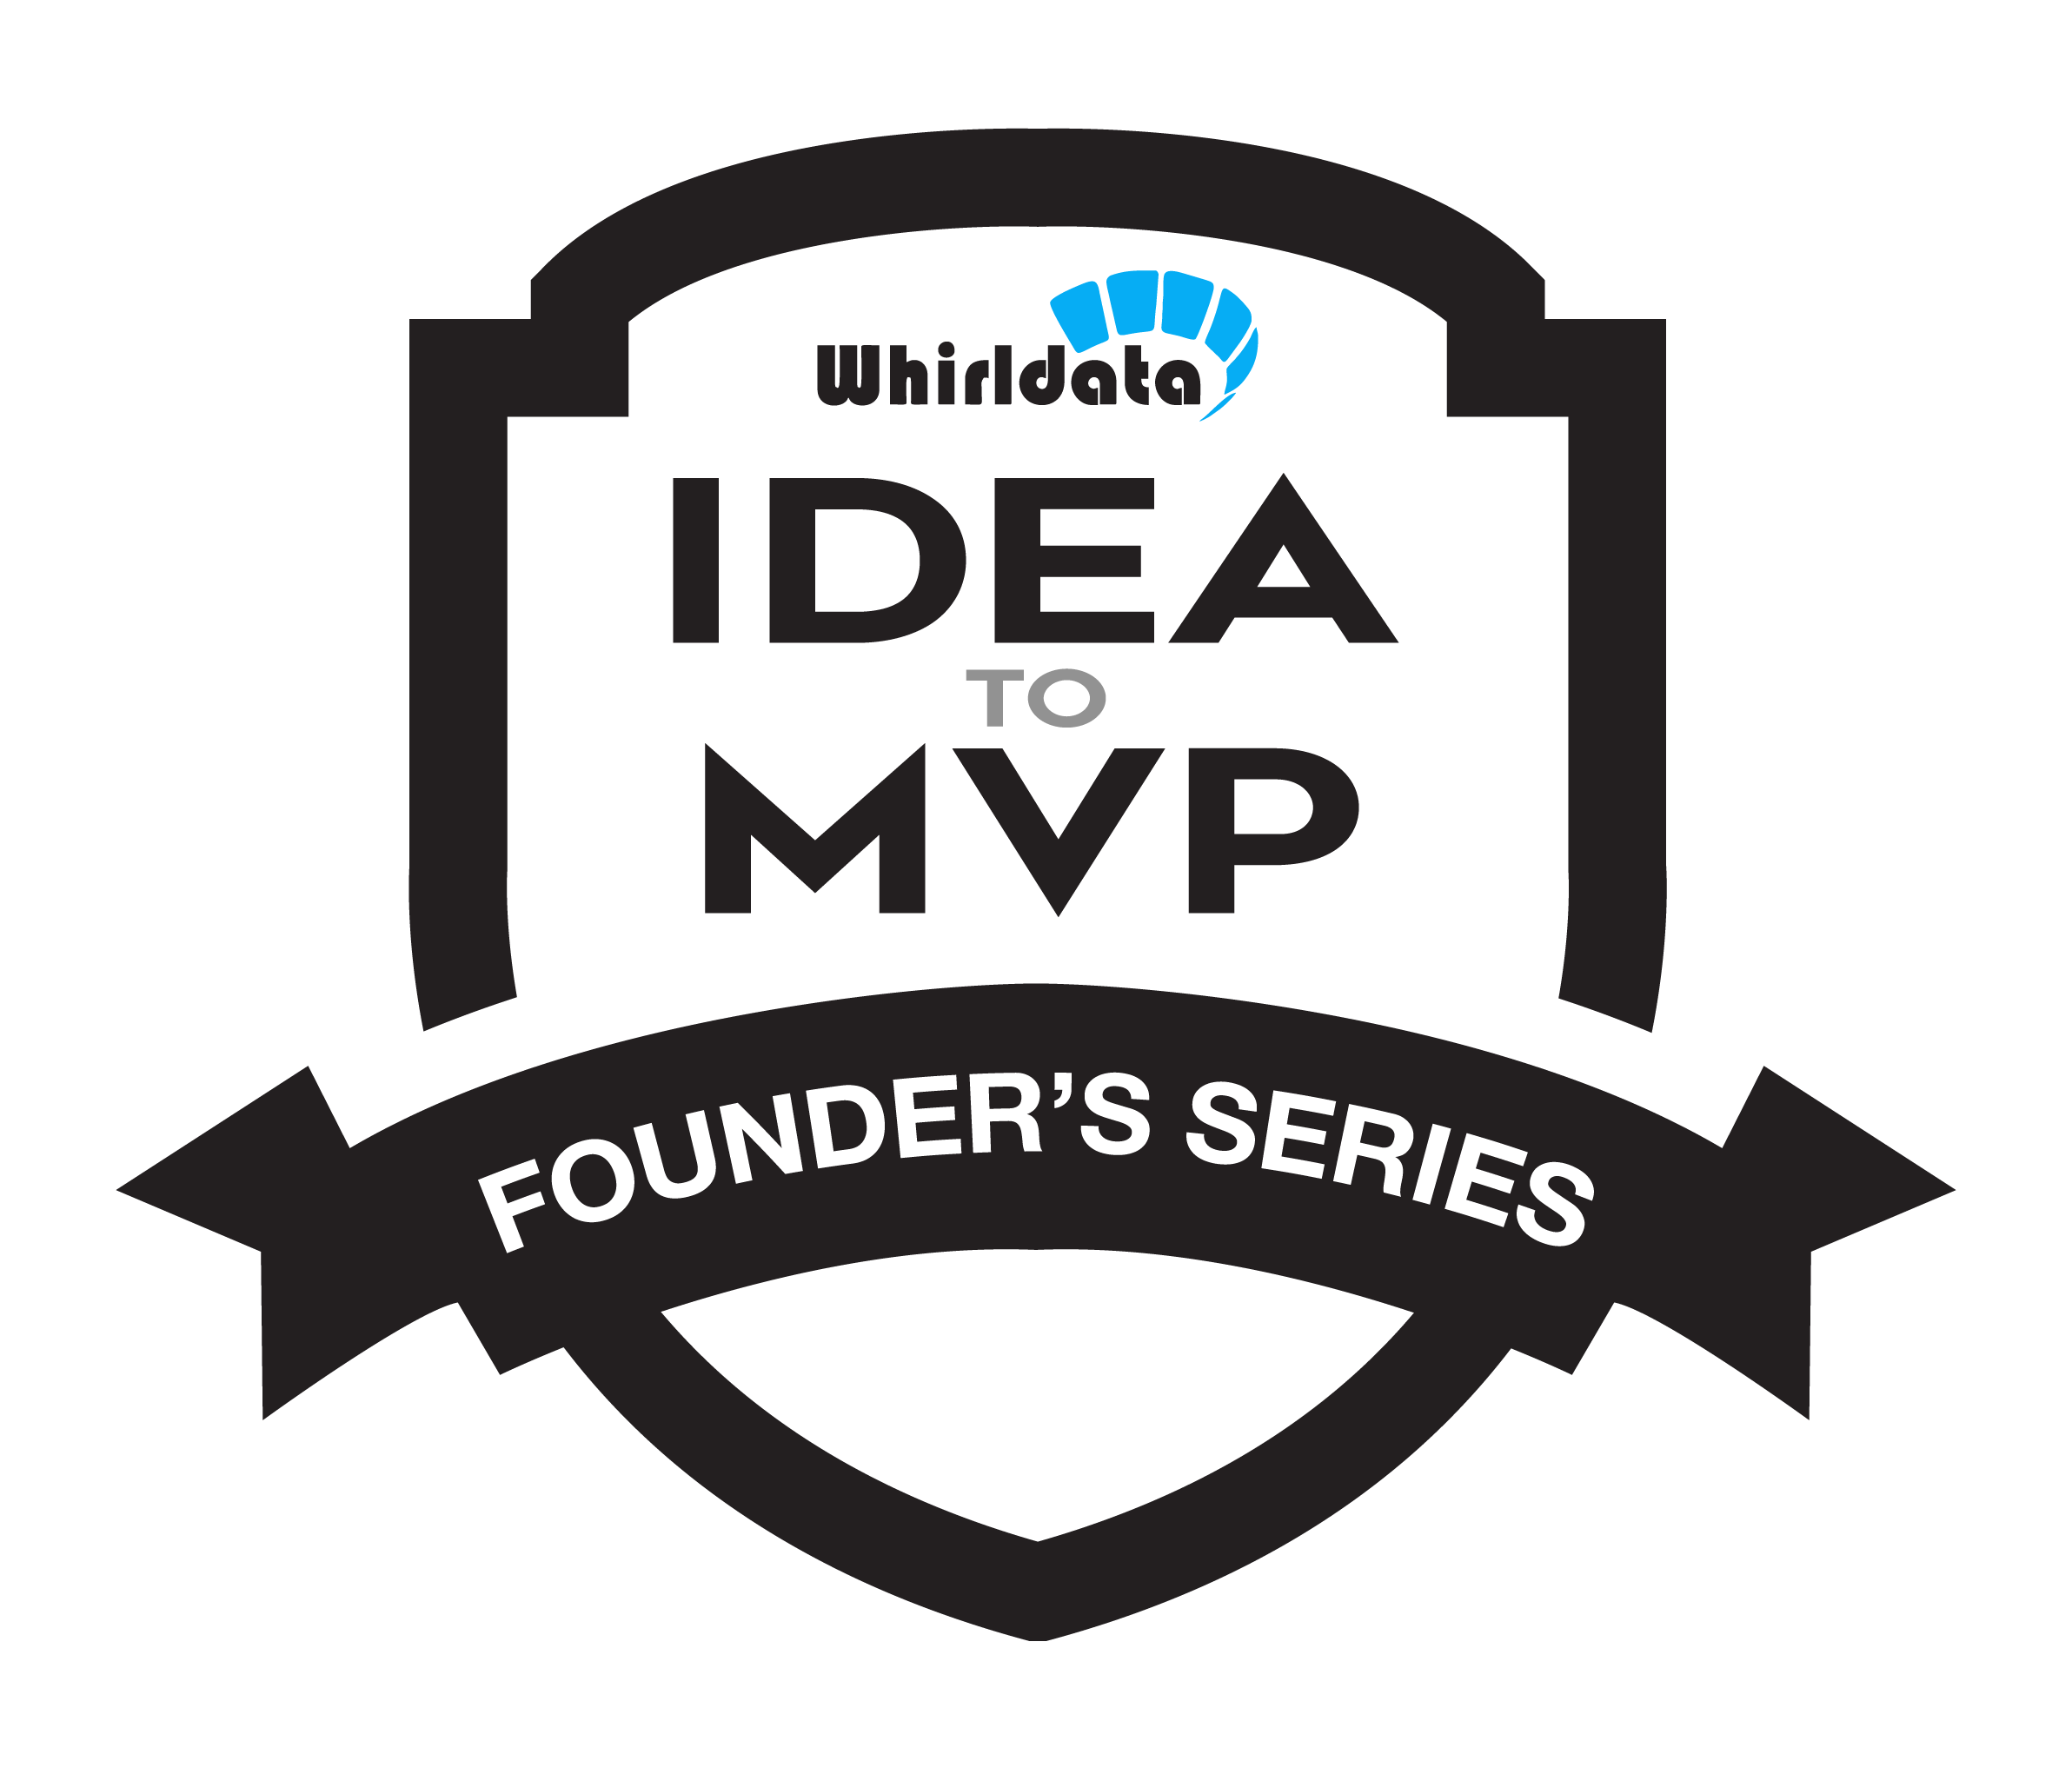 Founder Series Logo